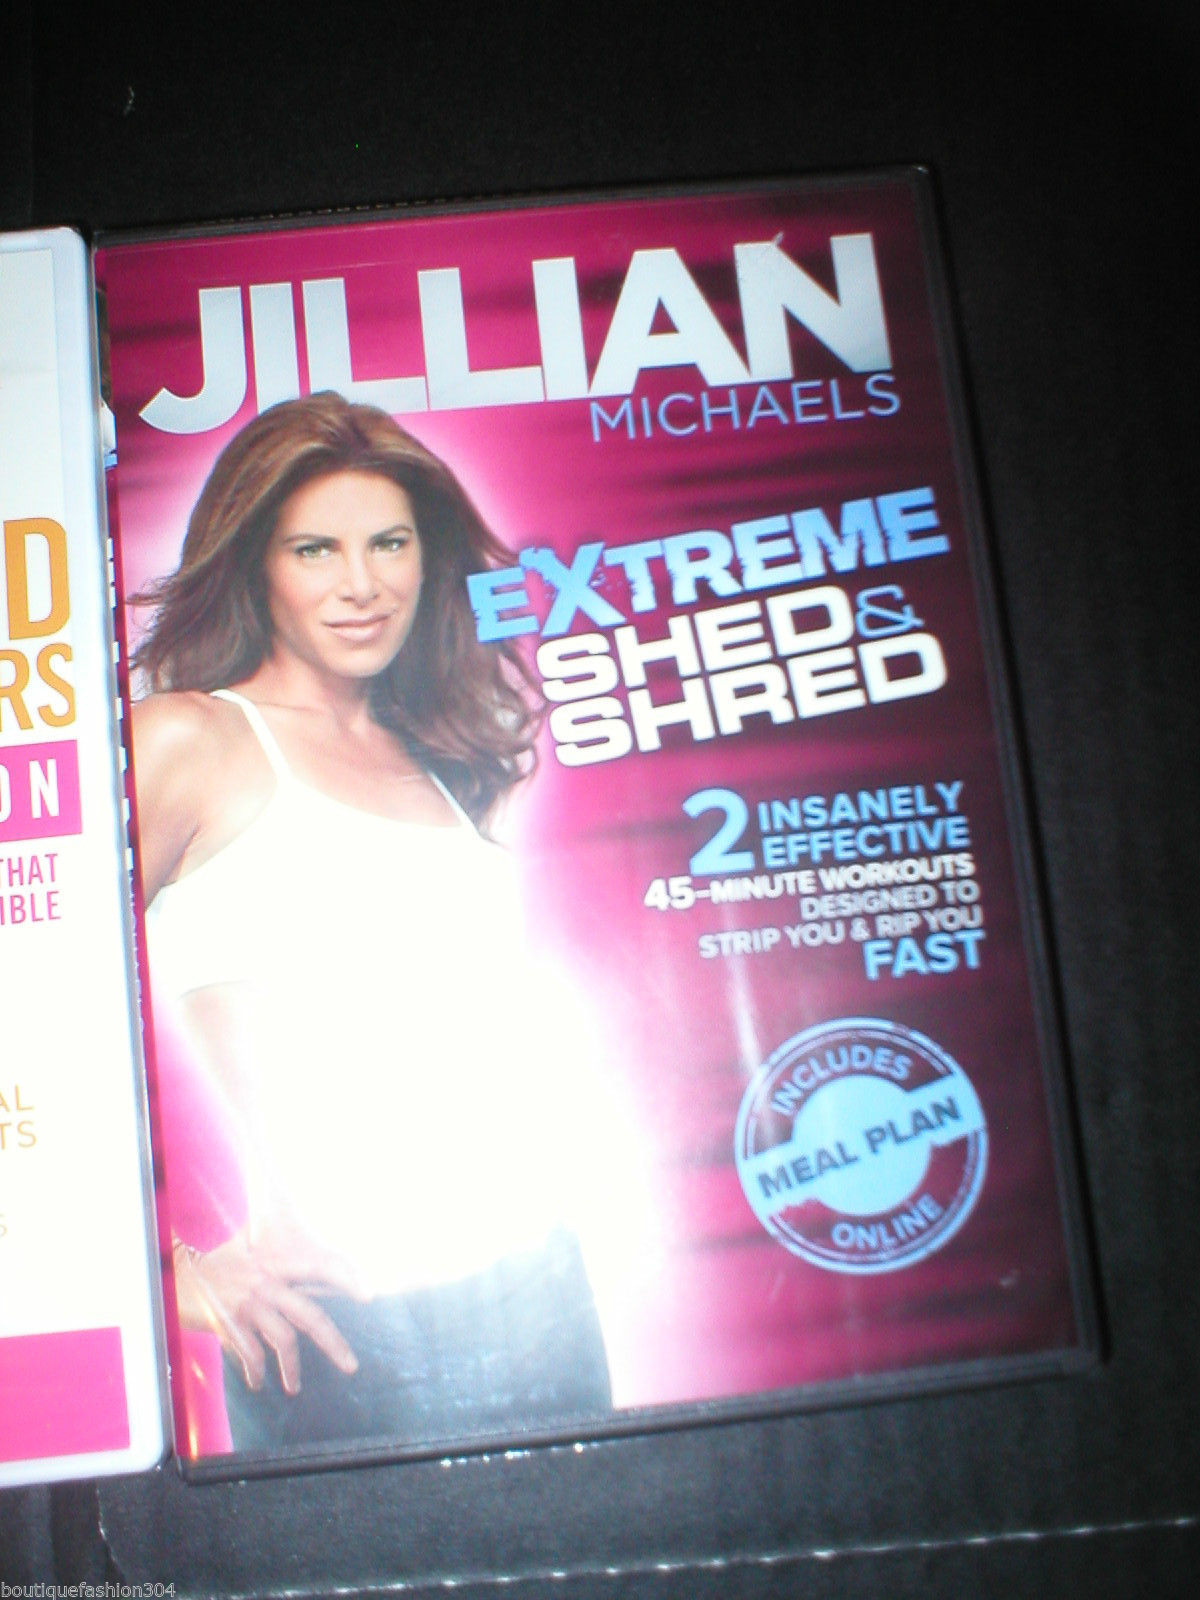 New DVD 3 Lot Yoga Shed & Shred Method Jillian Michaels Tracy Anderson 6 Workout image 5